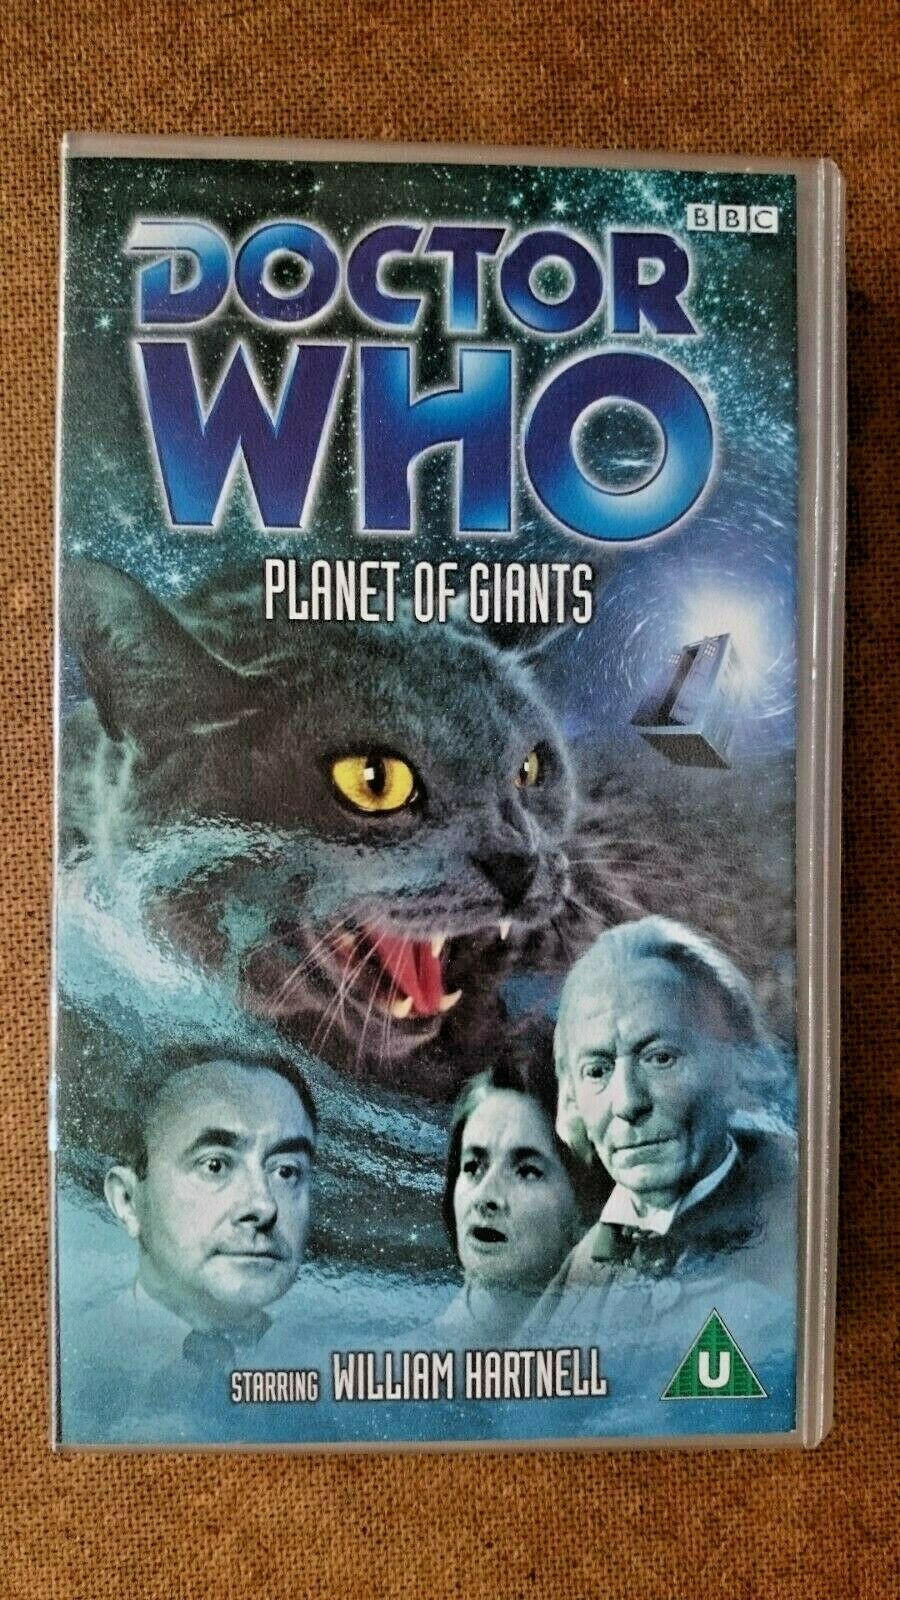 Doctor Who - Planet of Giants (VHS, 2002) - NEW and SEALED - William Hartnell